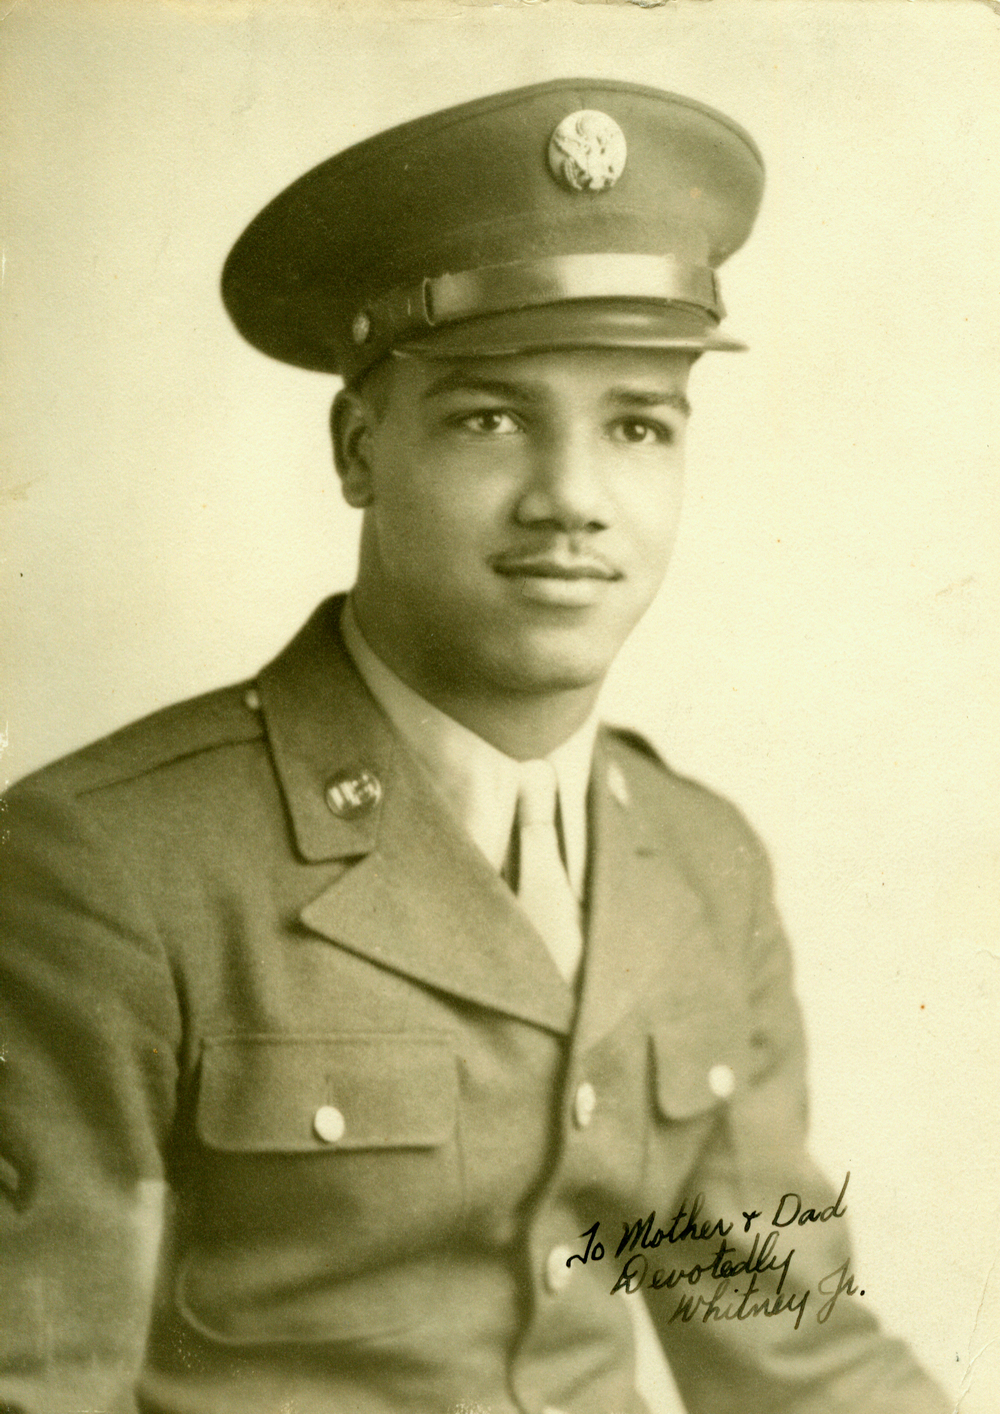 Young served in a segregated unit in the Army during World War II